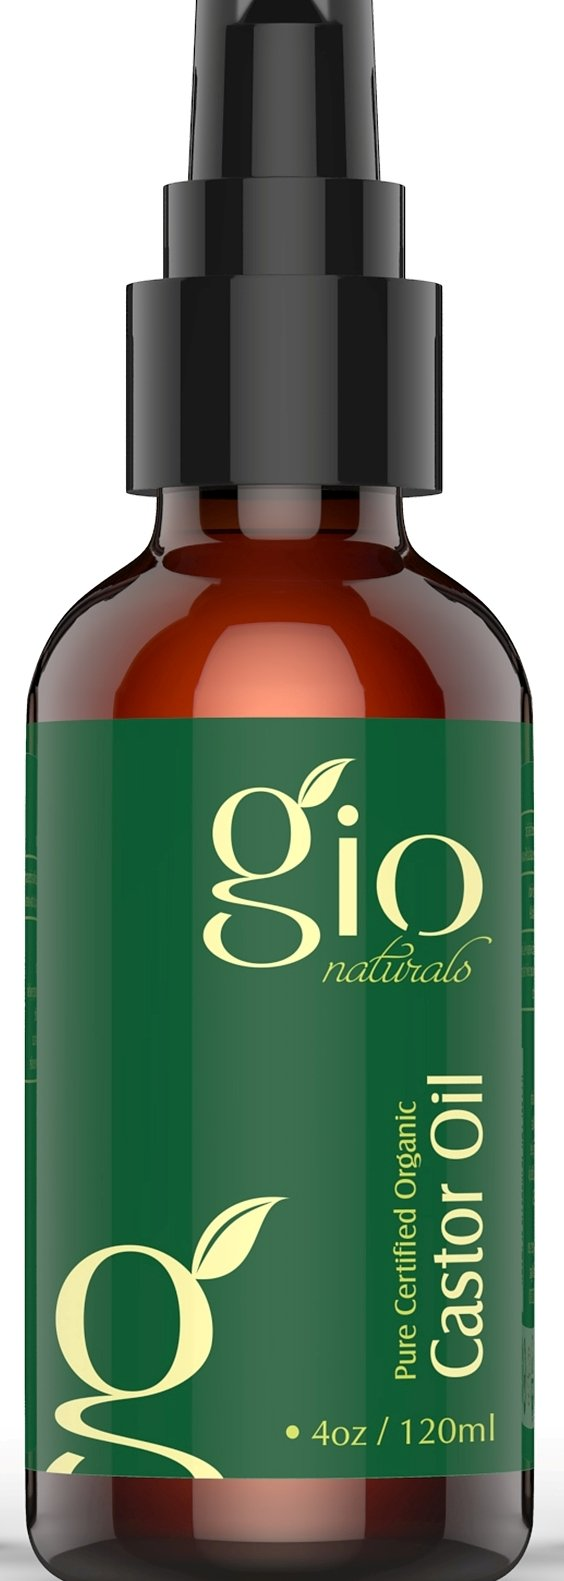 Gio Naturals Organic Cold Pressed Castor Oil, Regrowth Treatment for Hair and Skin Moisturizer, 4 Oz